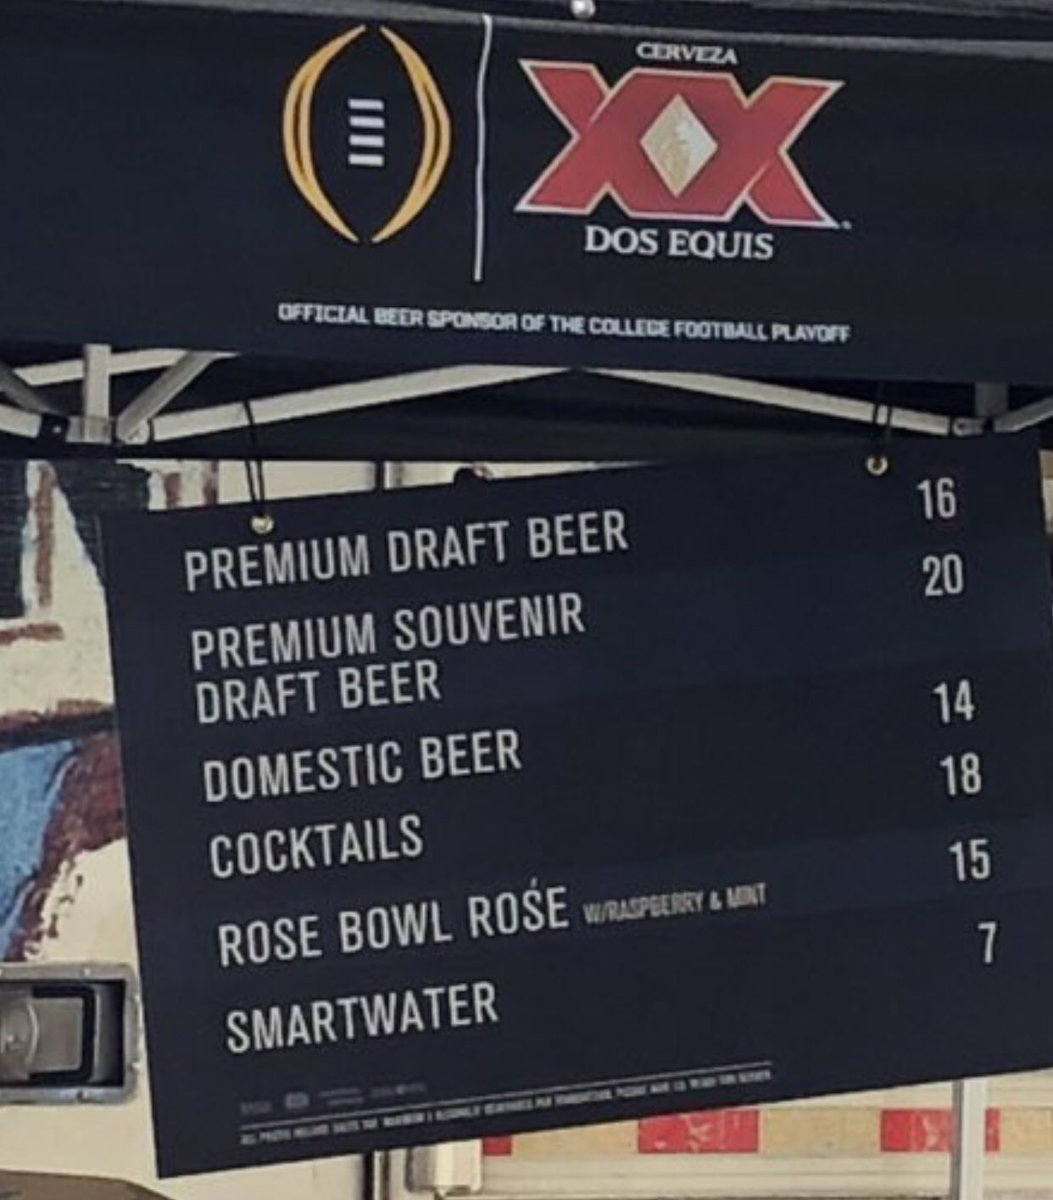 Rose Bowl drink prices today (via @Kevin_Noon) https://t.co/t8EKFwX7zP